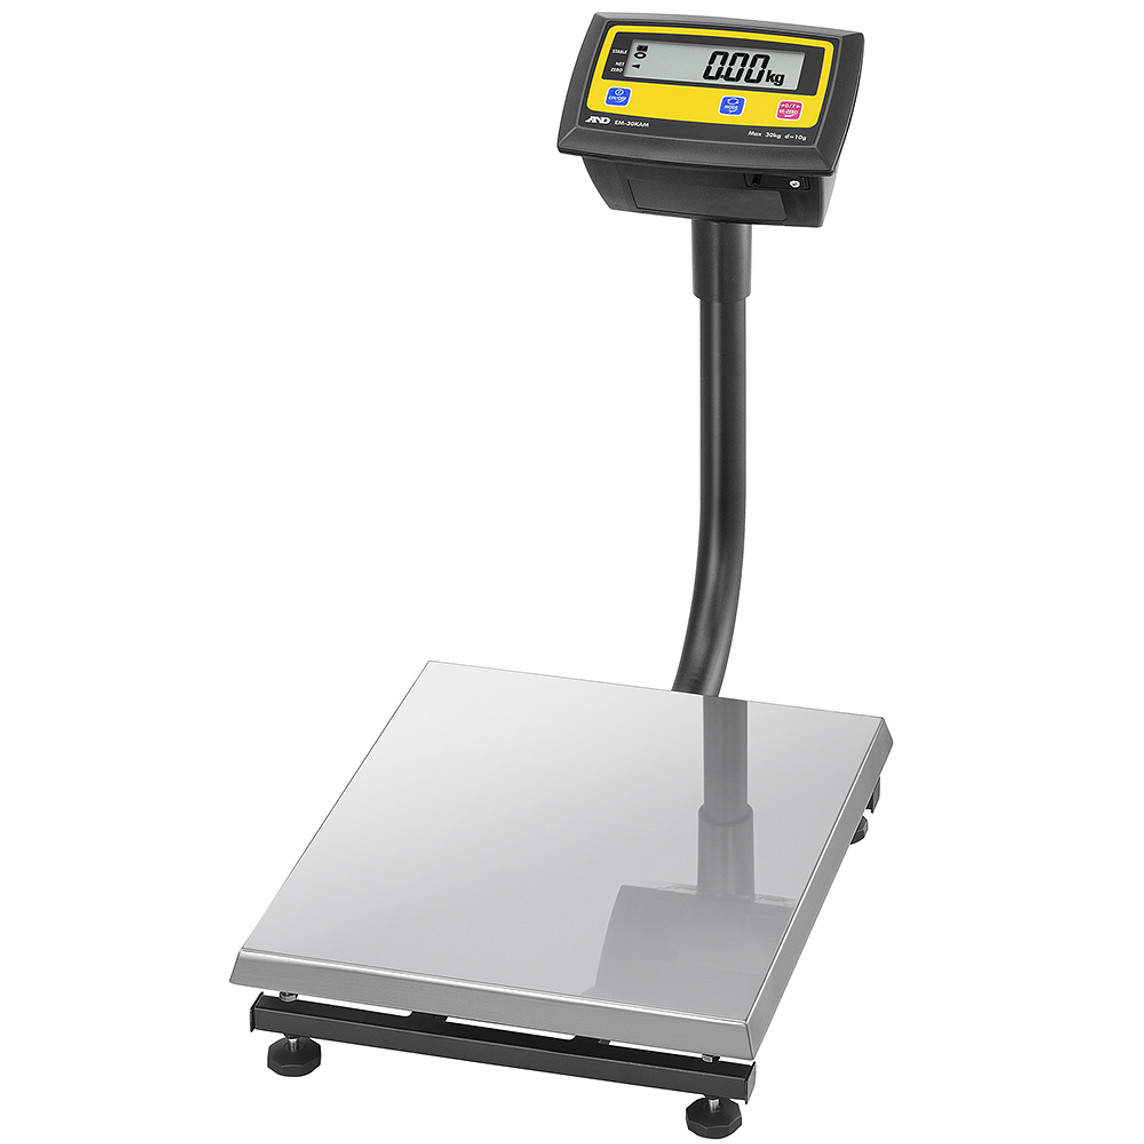 A&D EM Scales for Weighing Freight